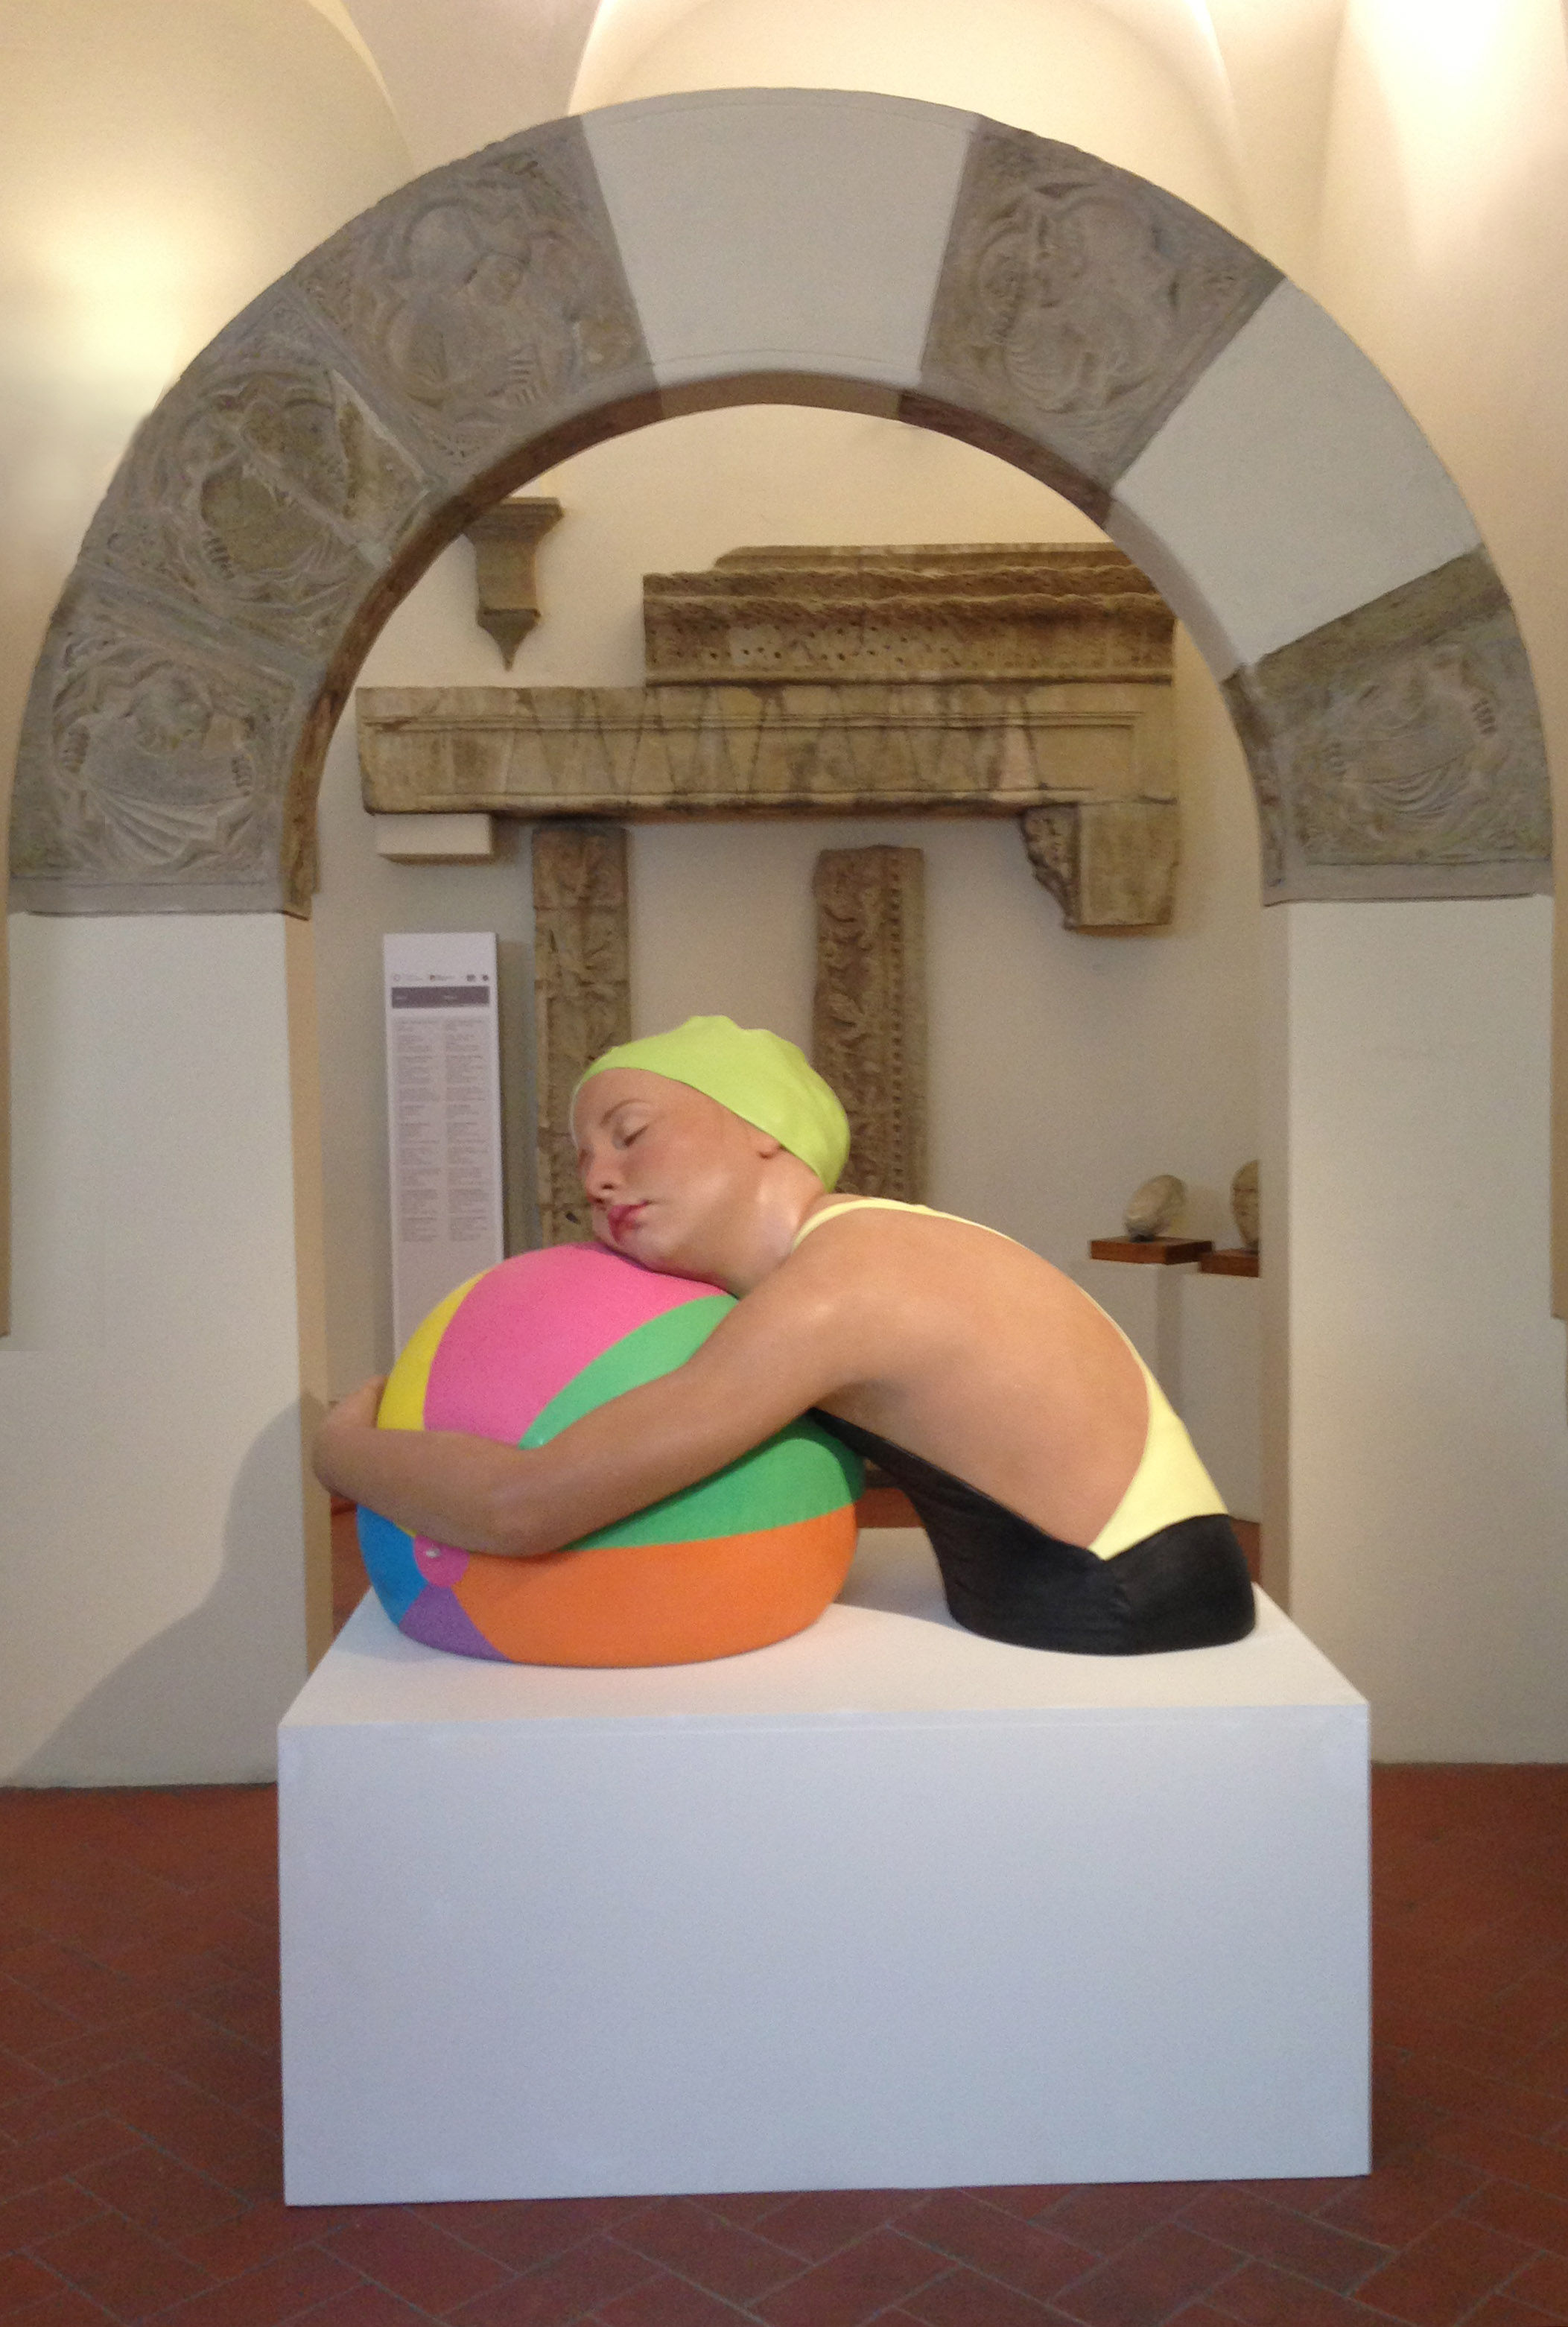 Monumental Brooke with Beach Ball by Carole Feuerman